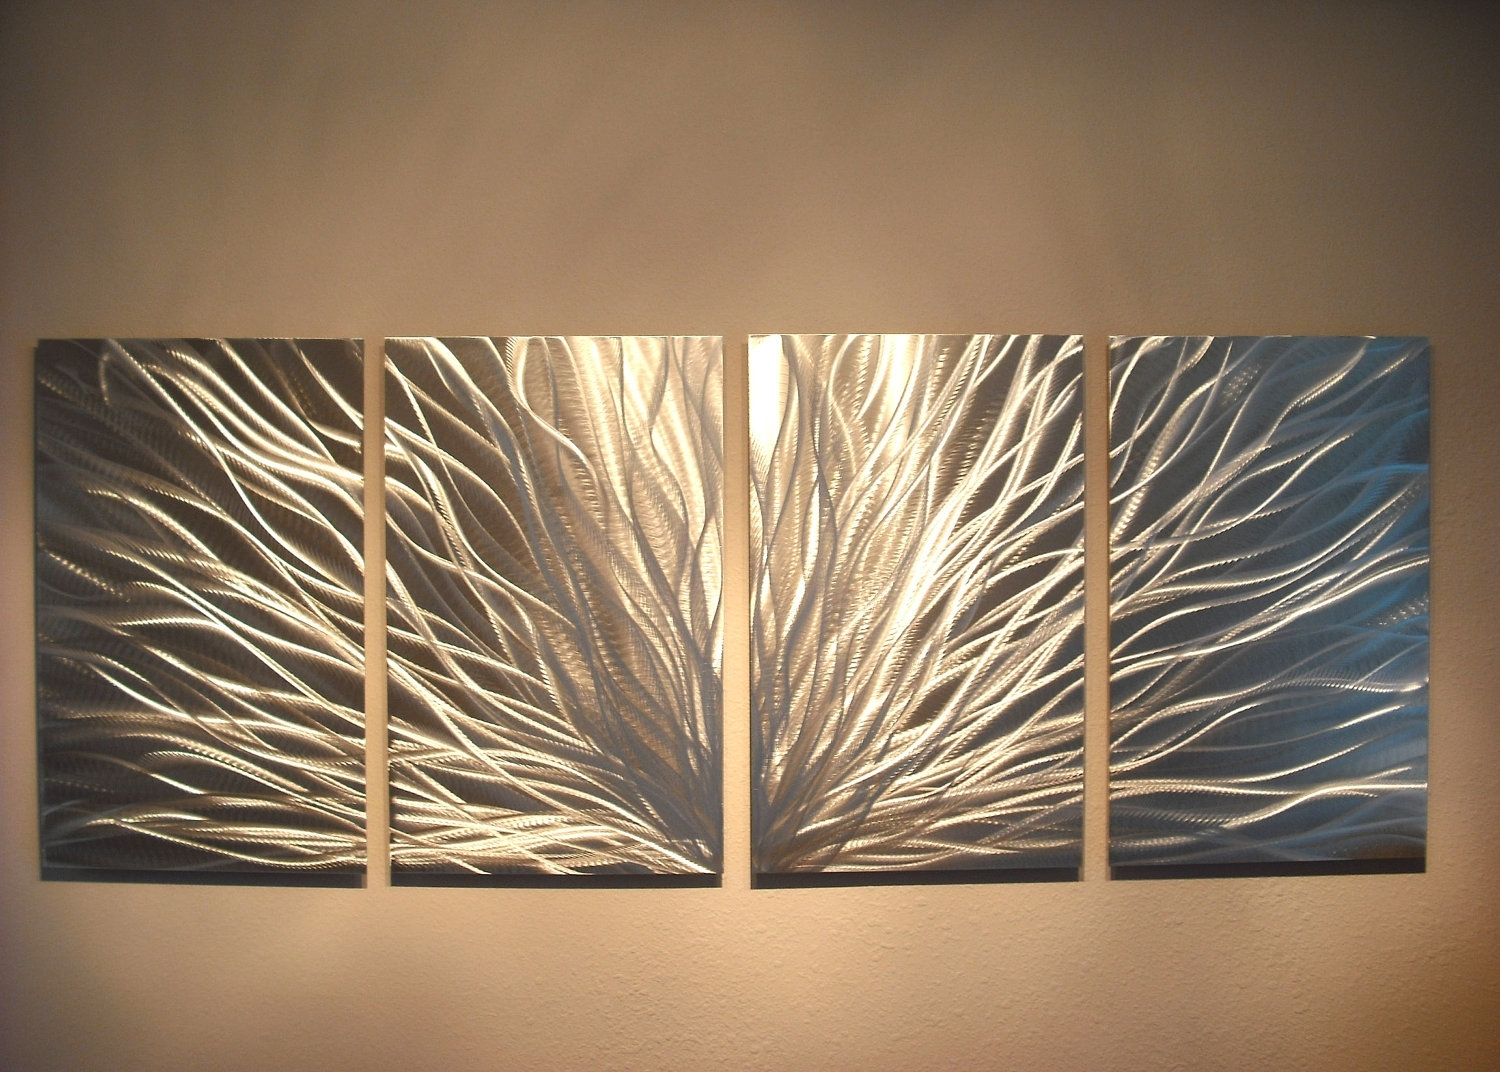 Radiance – Abstract Metal Wall Art Contemporary Modern Decor With Latest Abstract Iron Wall Art (View 12 of 20)